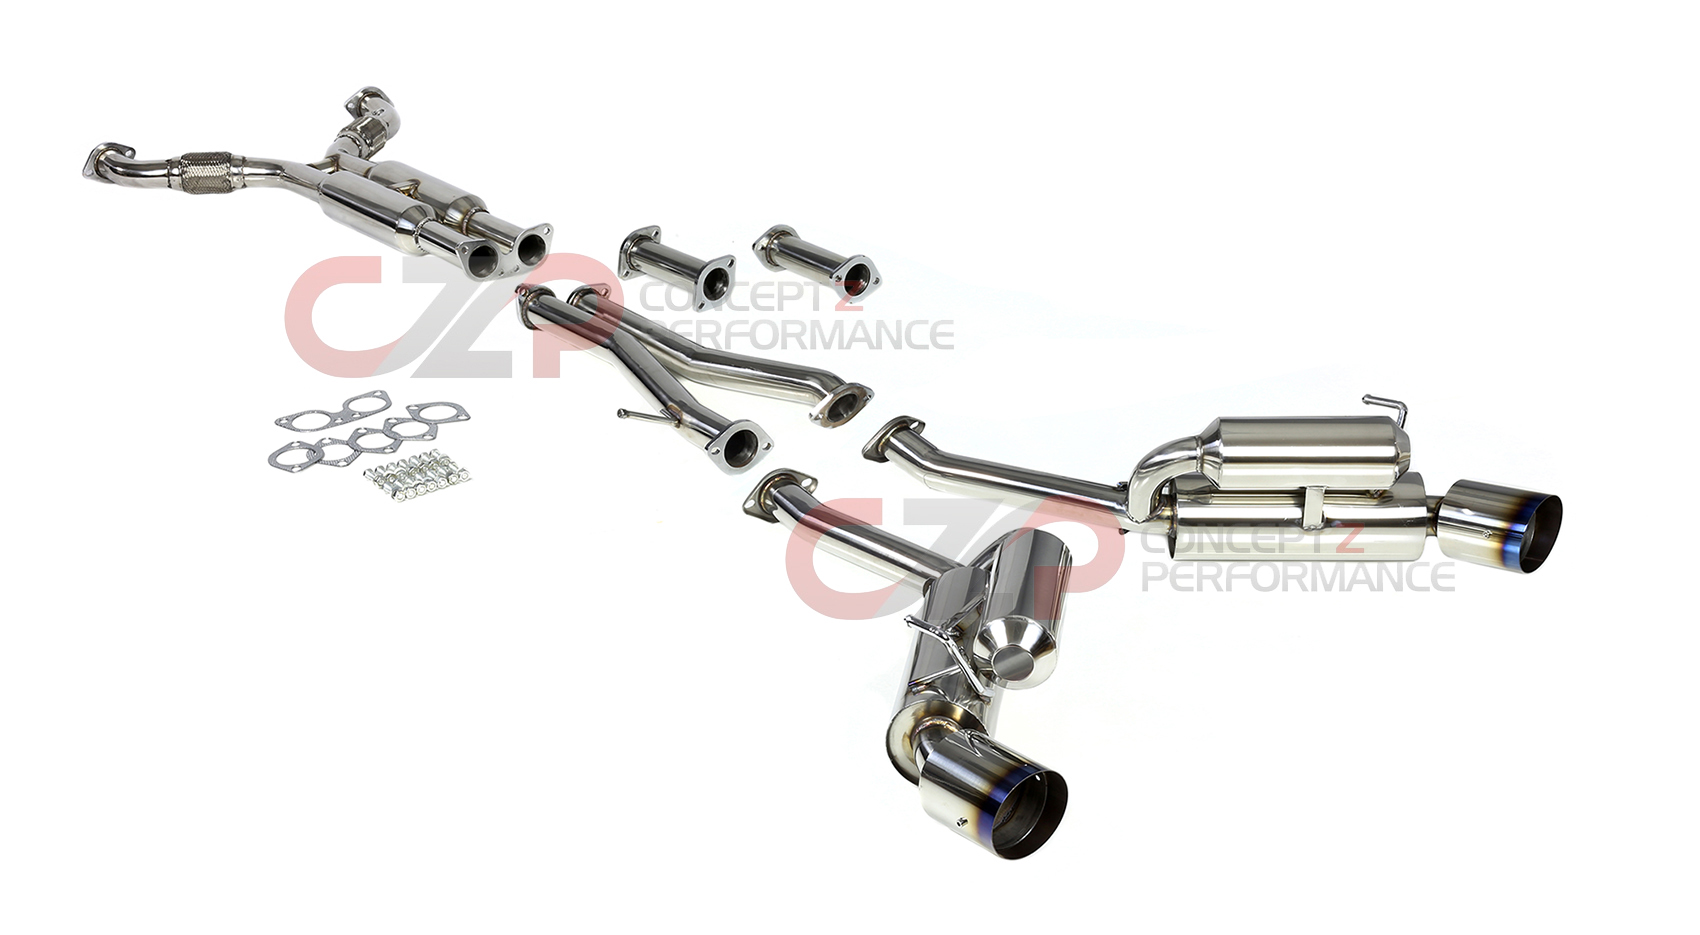 nissan pathfinder exhaust system diagram 2004 pontiac grand am spark plug wiring 350z performance north american specification